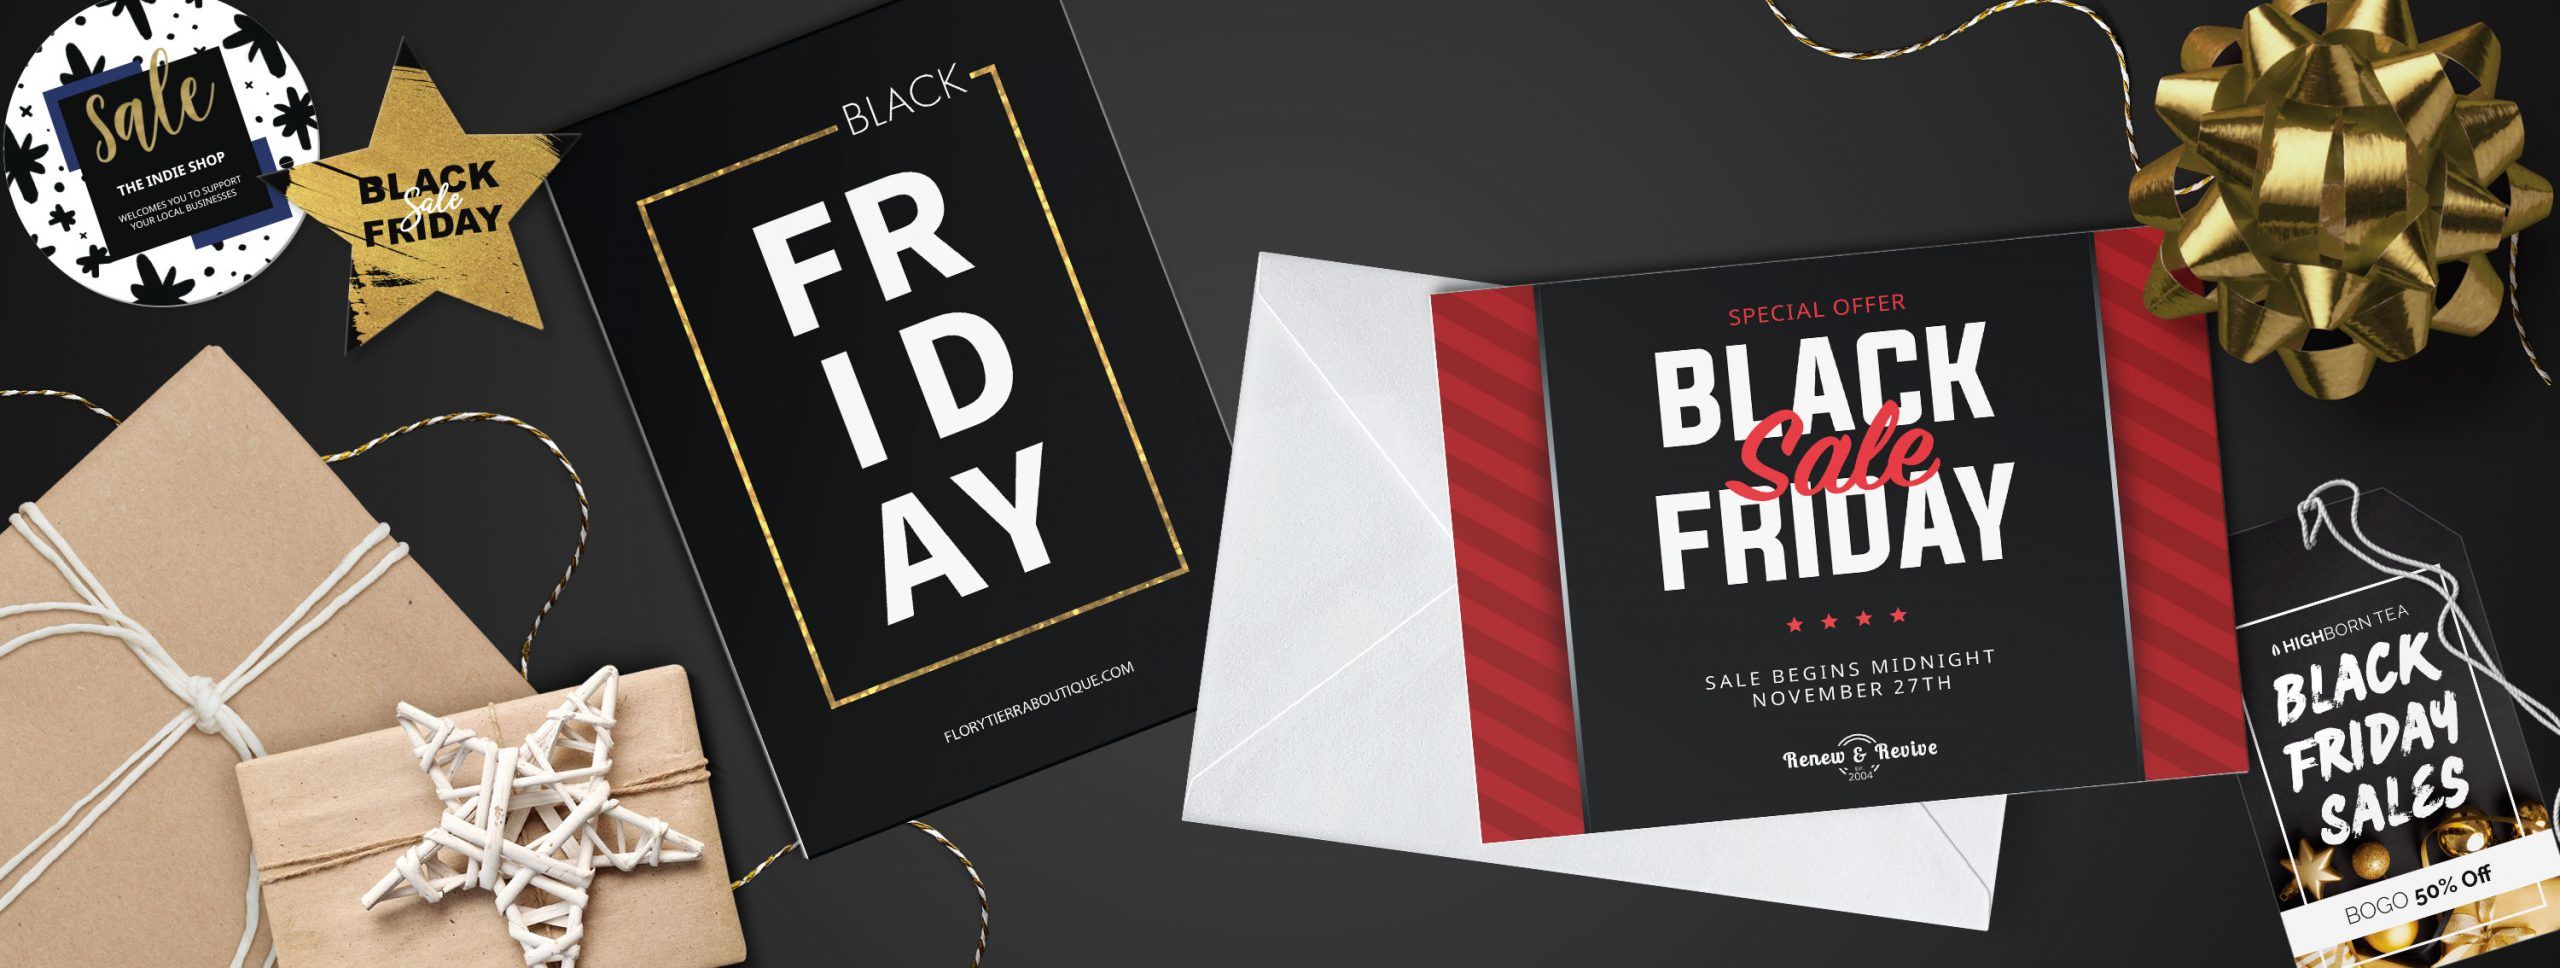 Free templates for black friday sales and small business saturday sales